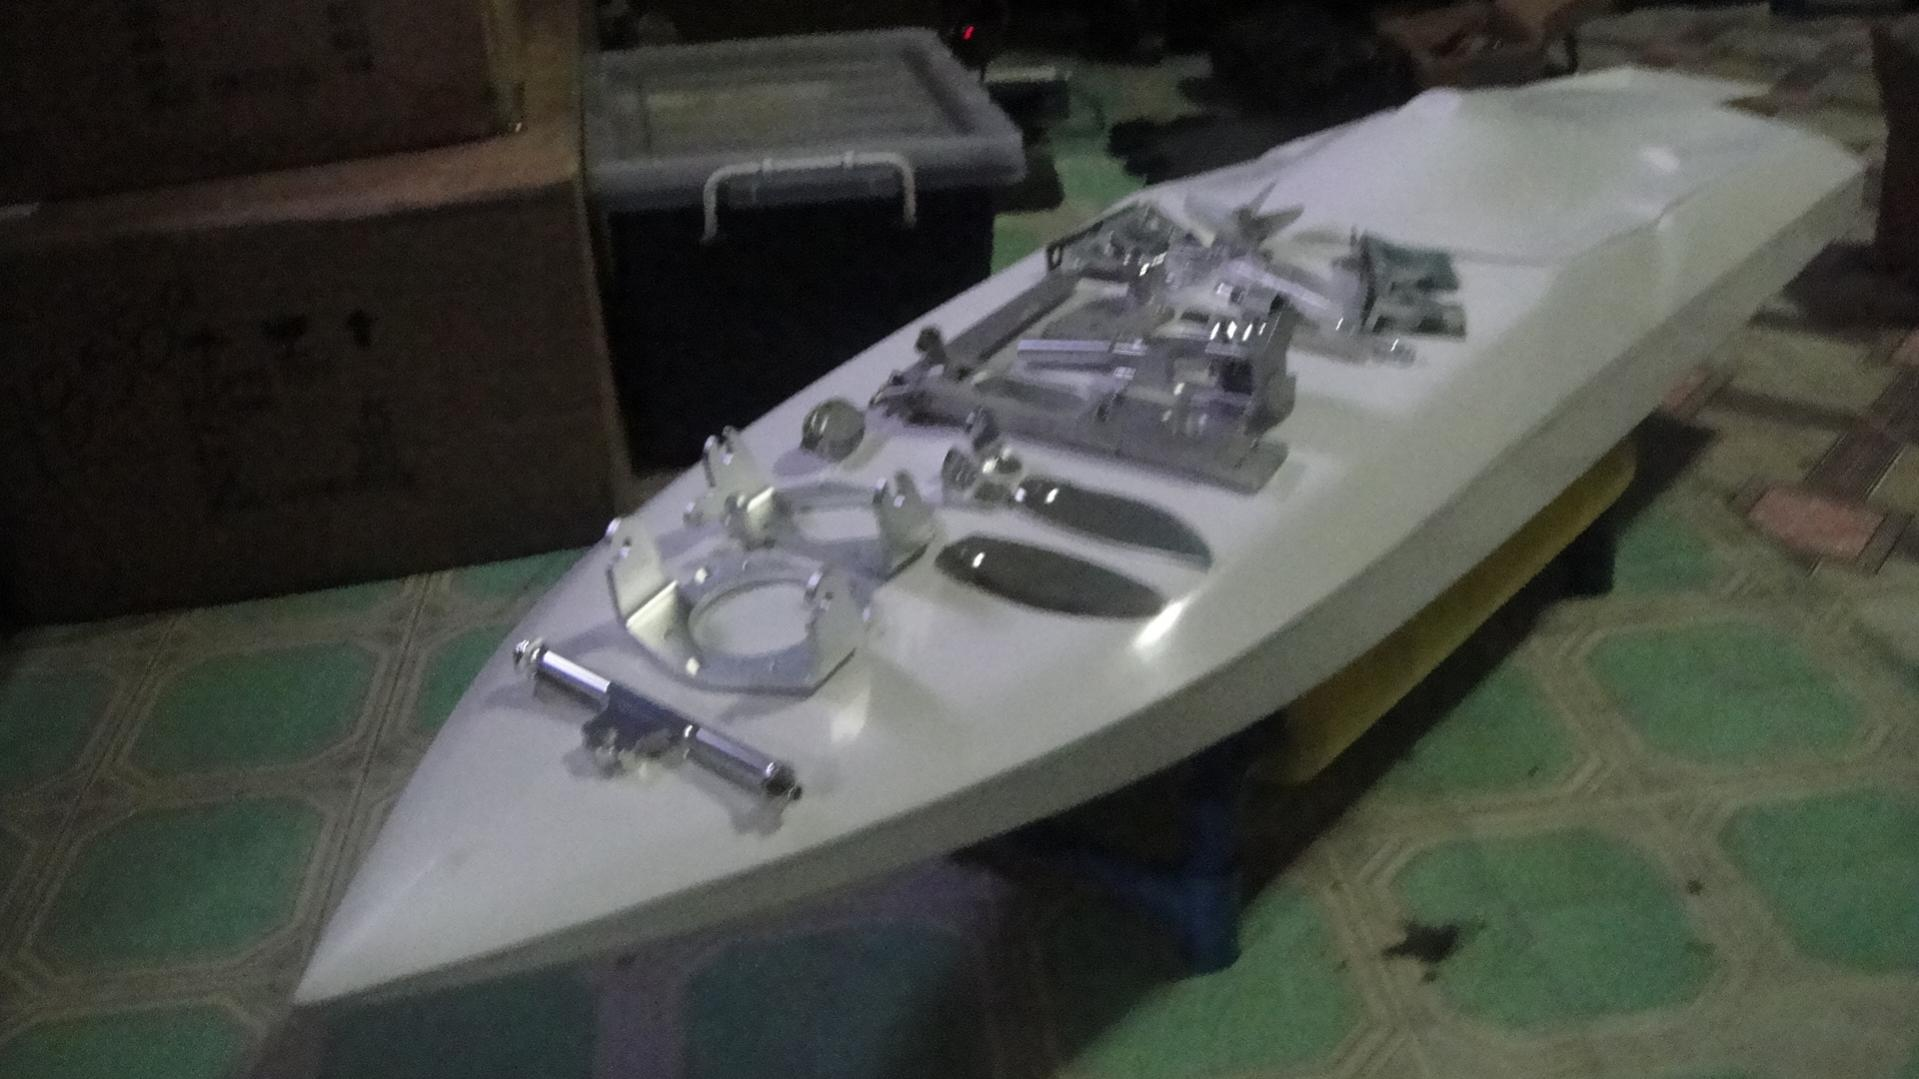 RC BOAT - Page 298 - R/C Tech Forums